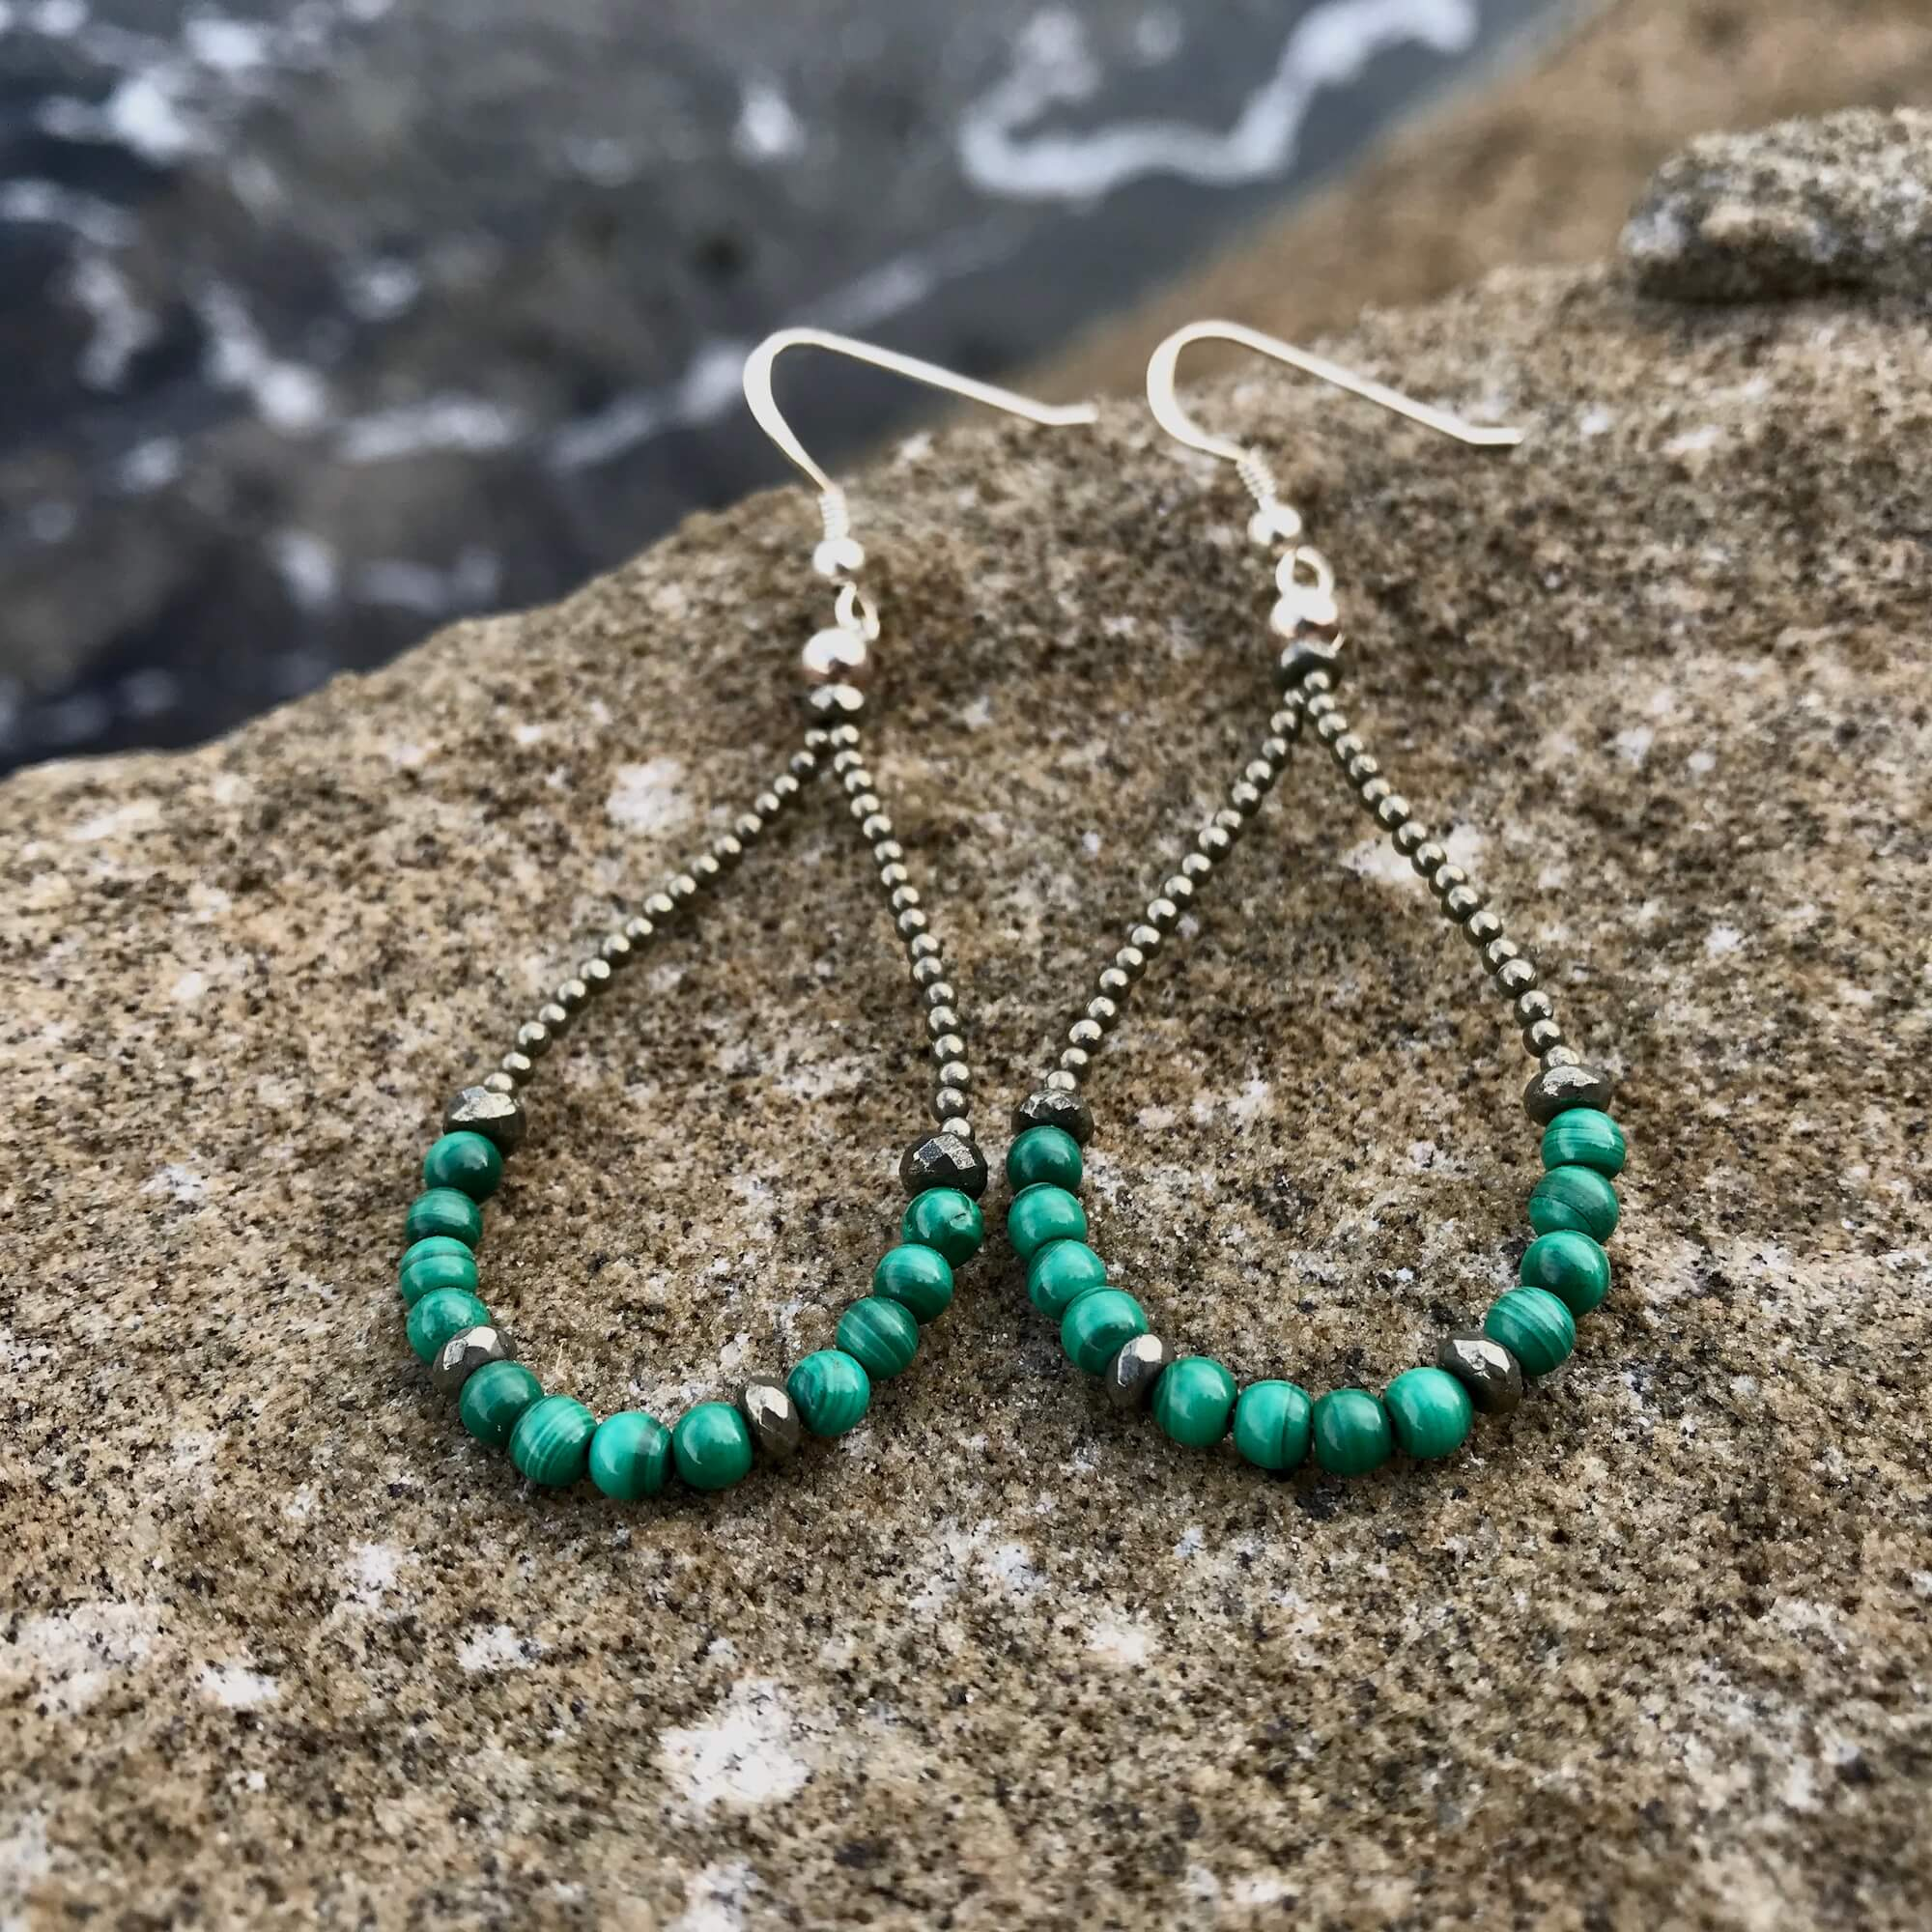 Malachite & Pyrite manifestation and healing earrings